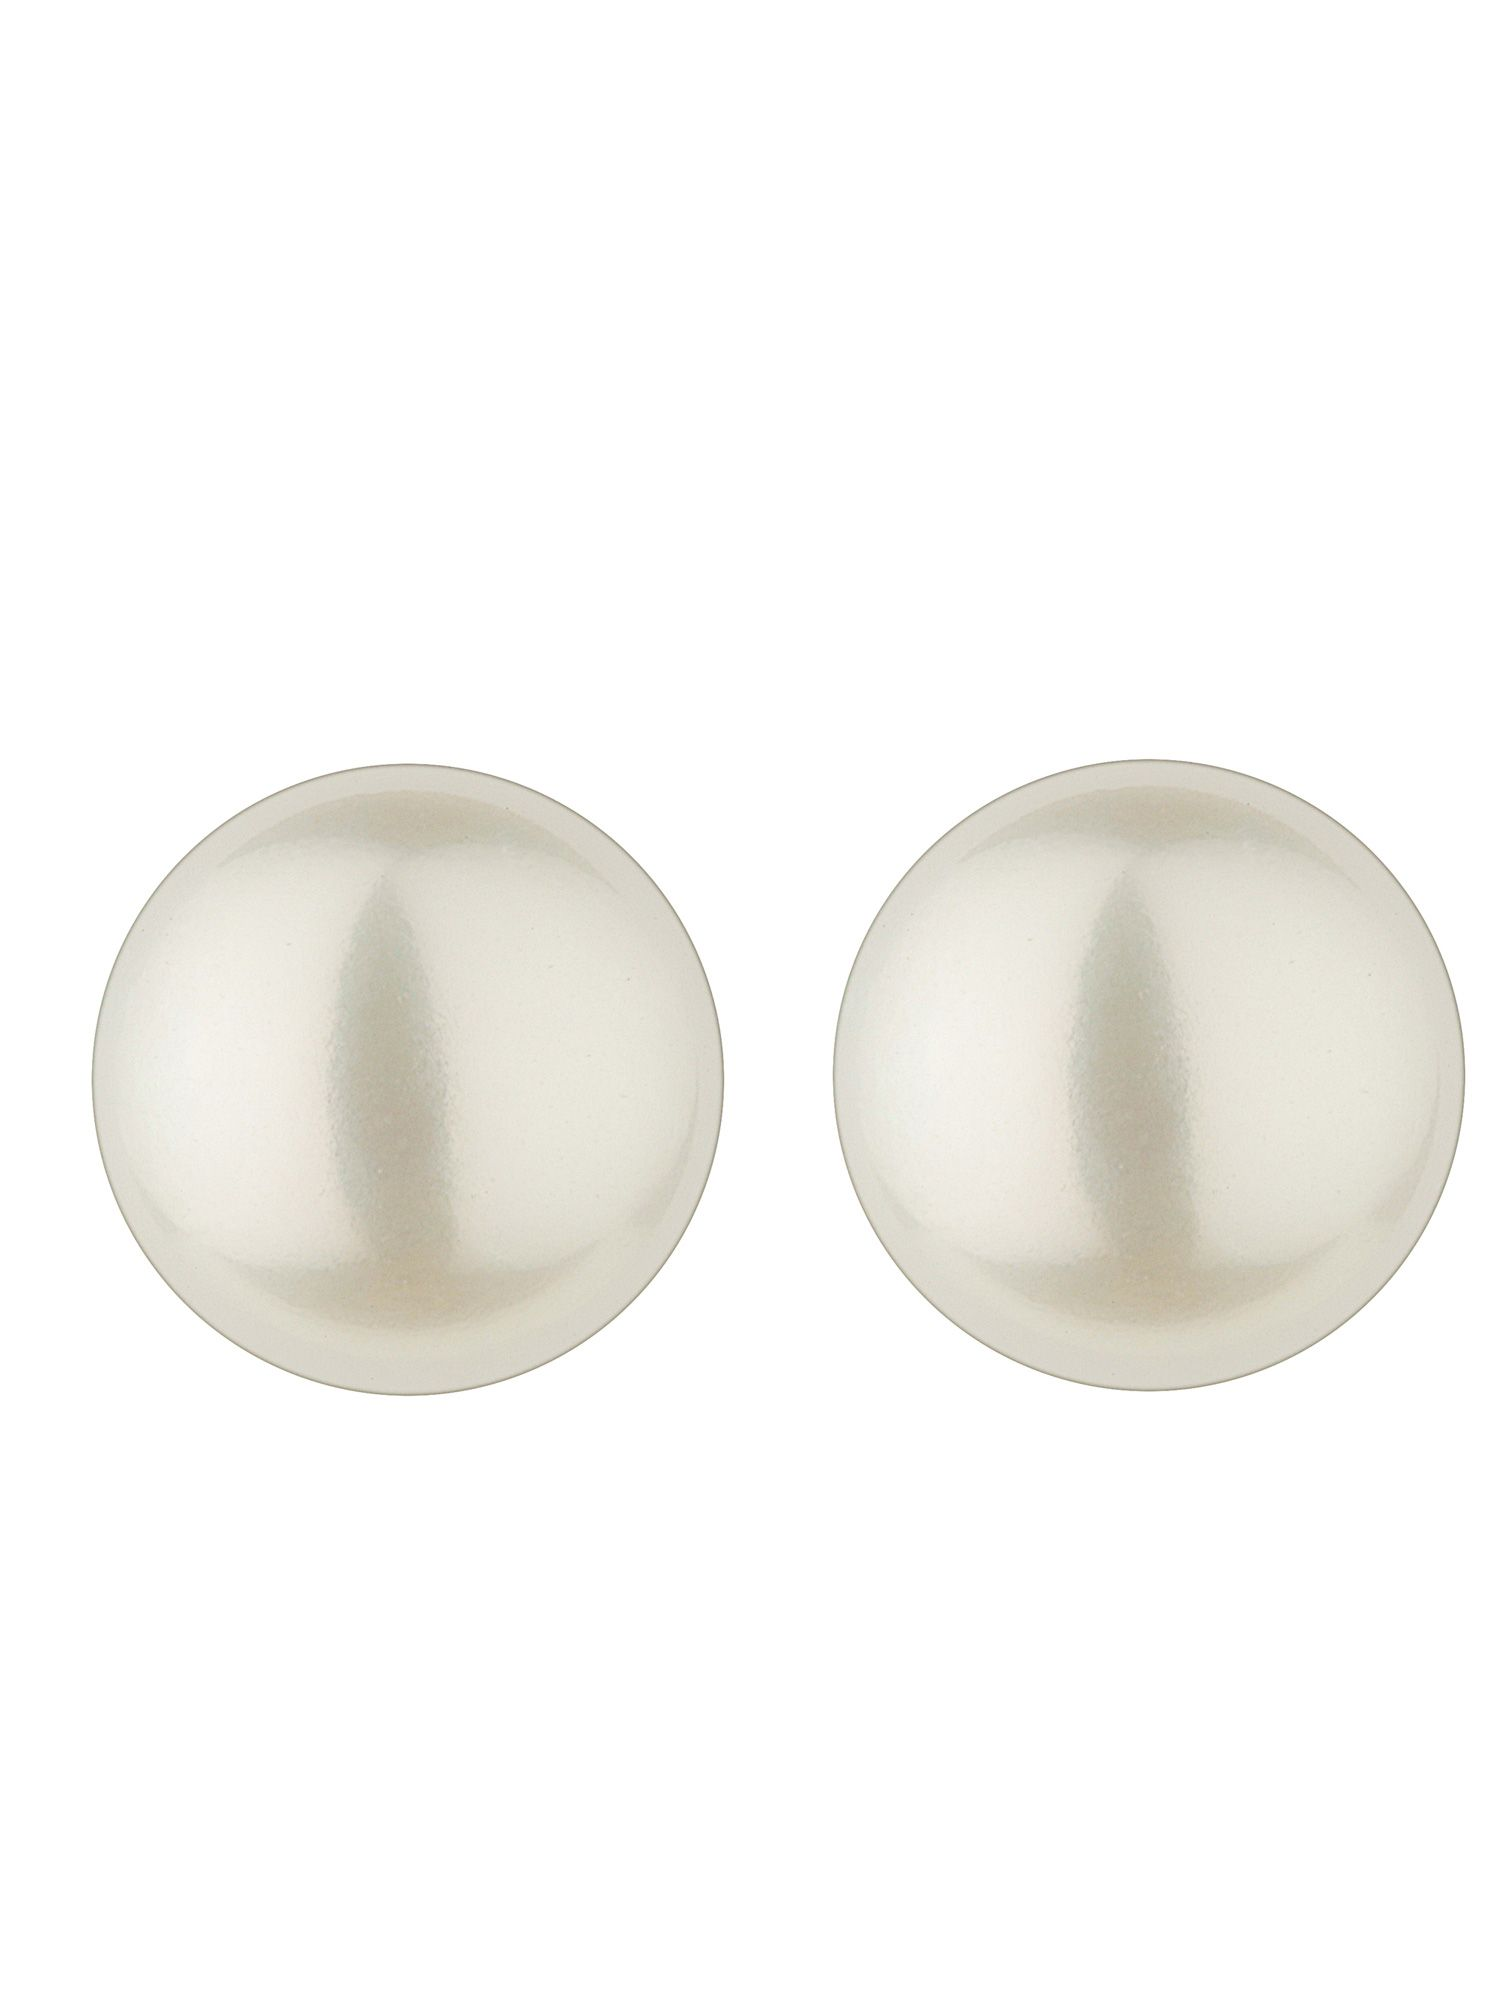 Goldsmiths 9ct gold 7.0-7.5mm freshwater pearl product image